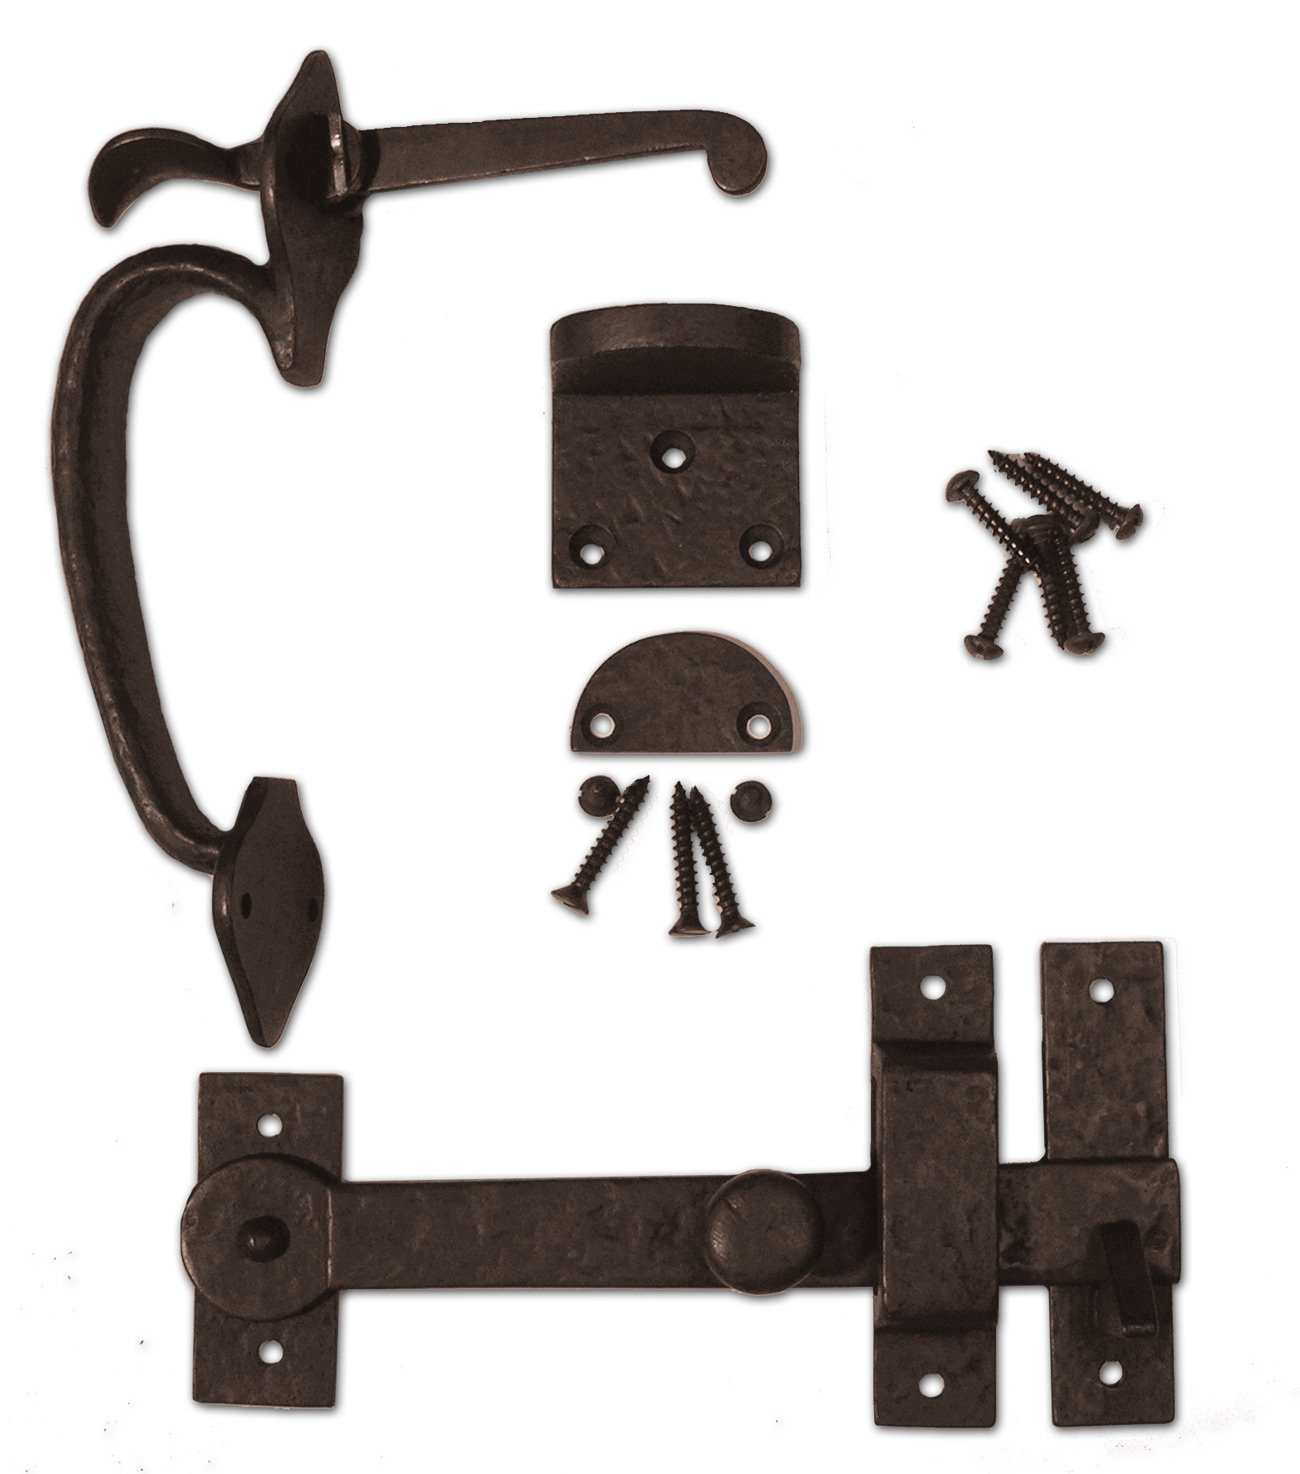 Coastal Bronze - Gate Kit - Thumb Latch Drop Bar Set - 40-900 by Coastal Bronze